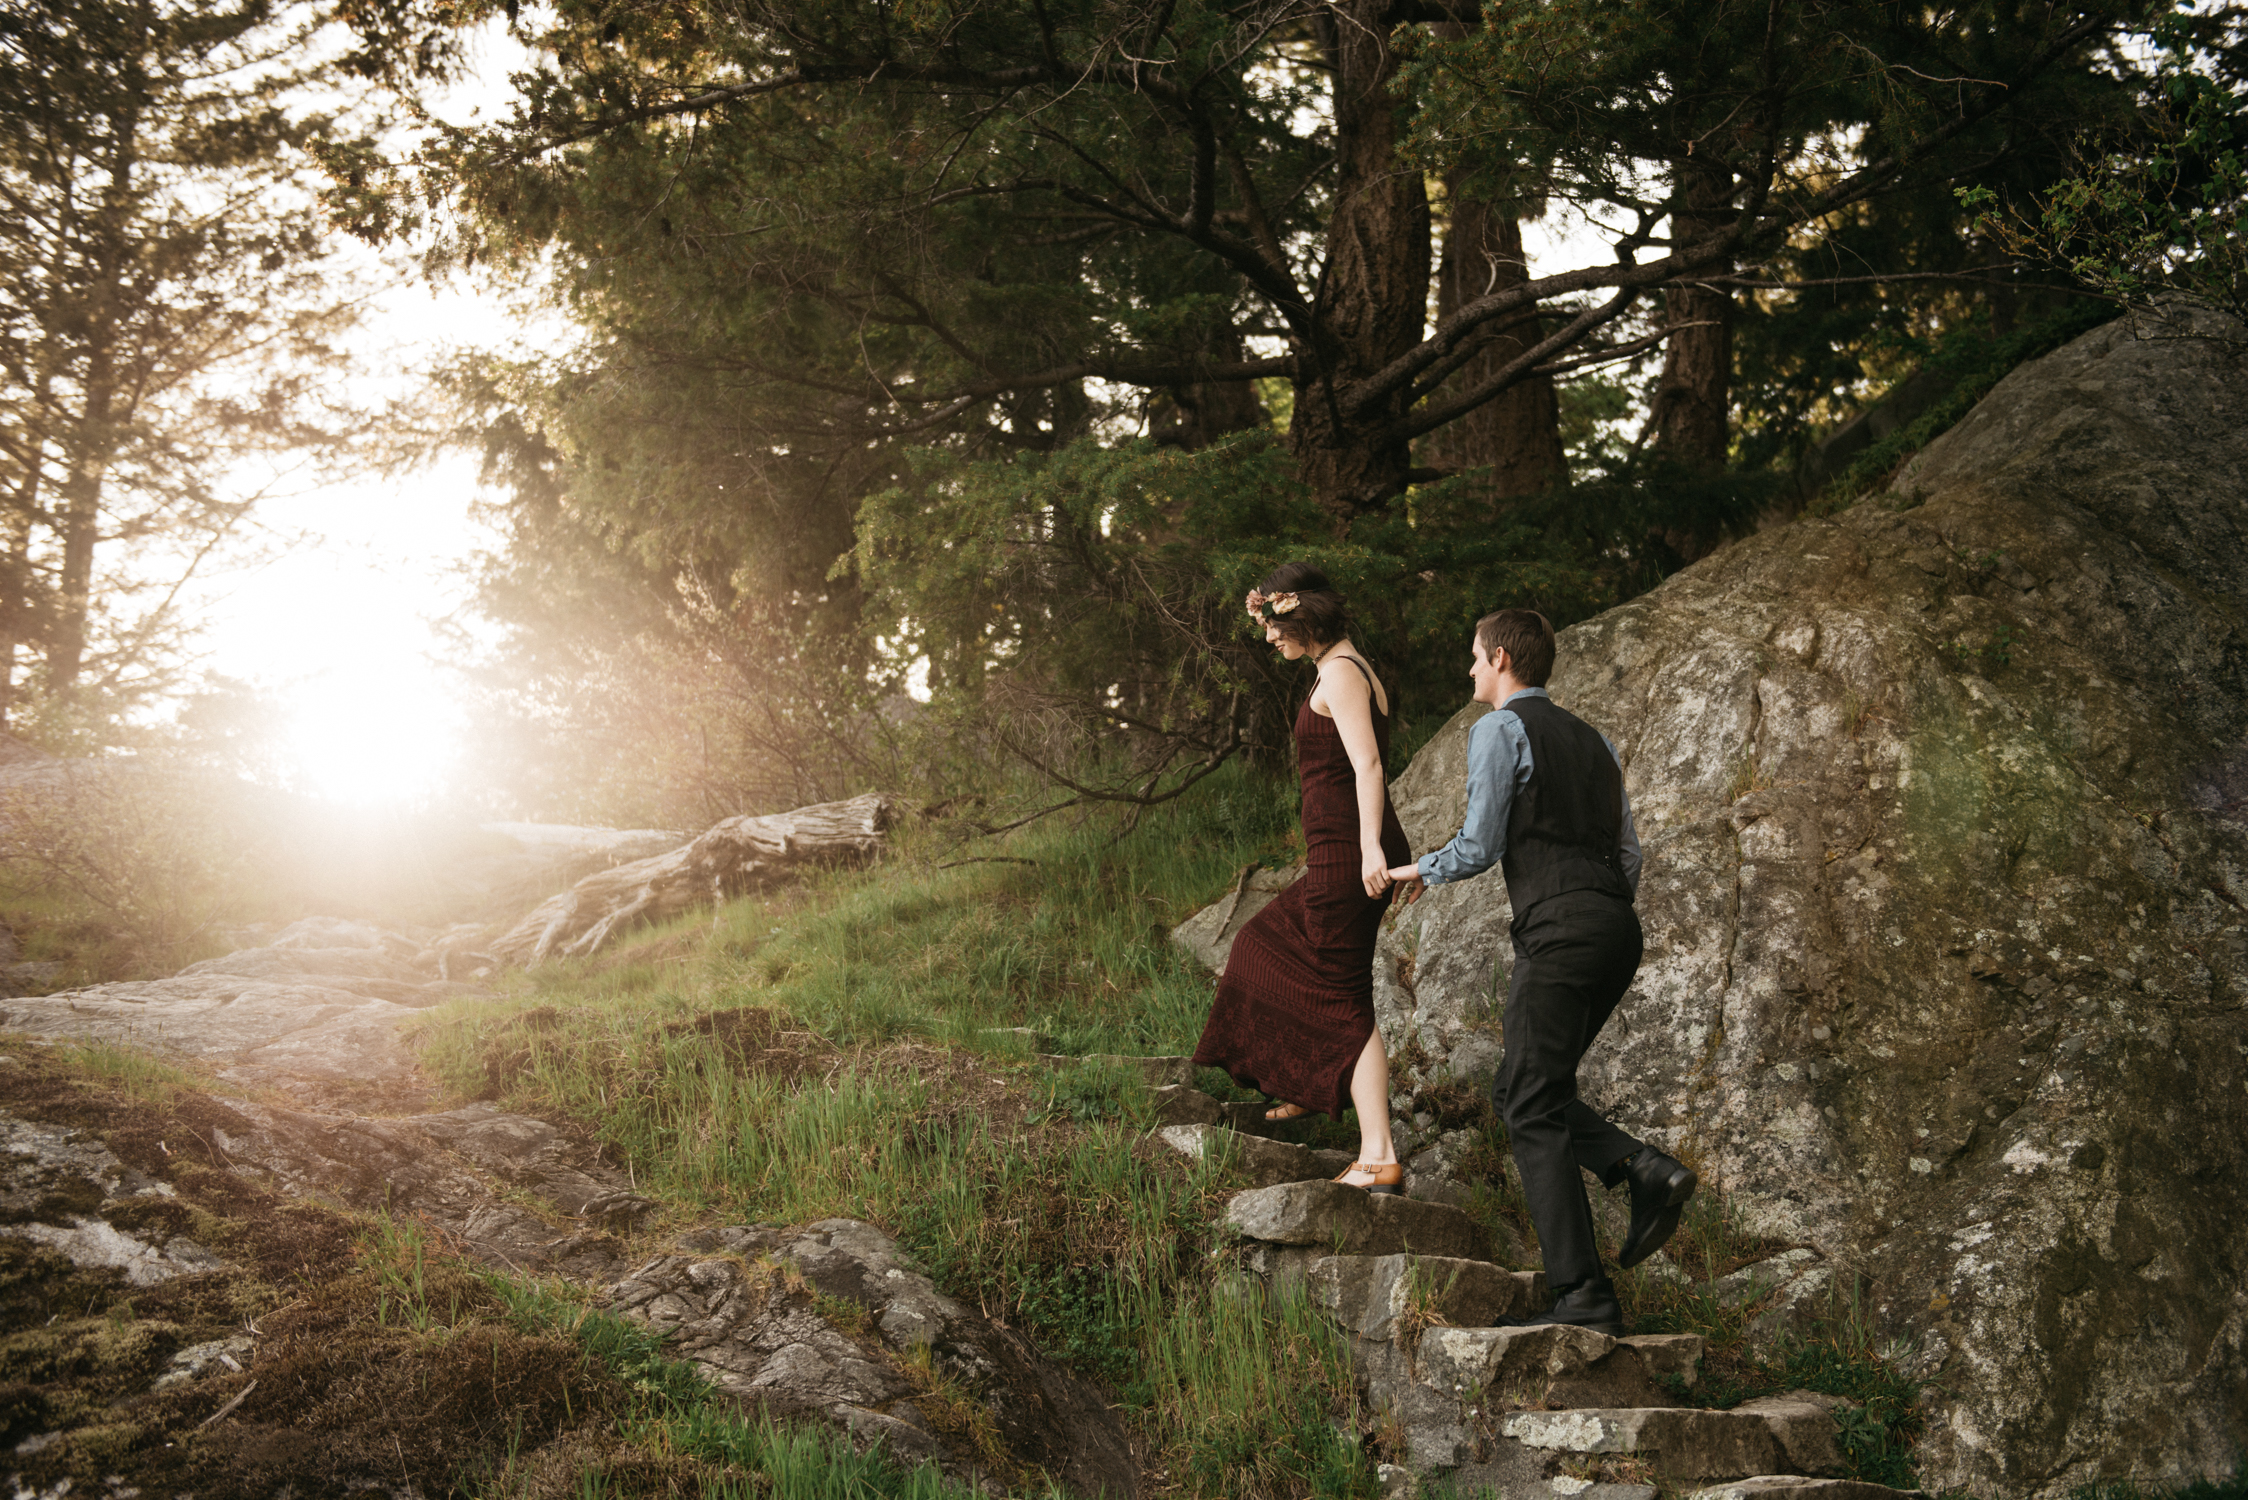 002_whytecliff_vancouver_bc_engagement.jpg